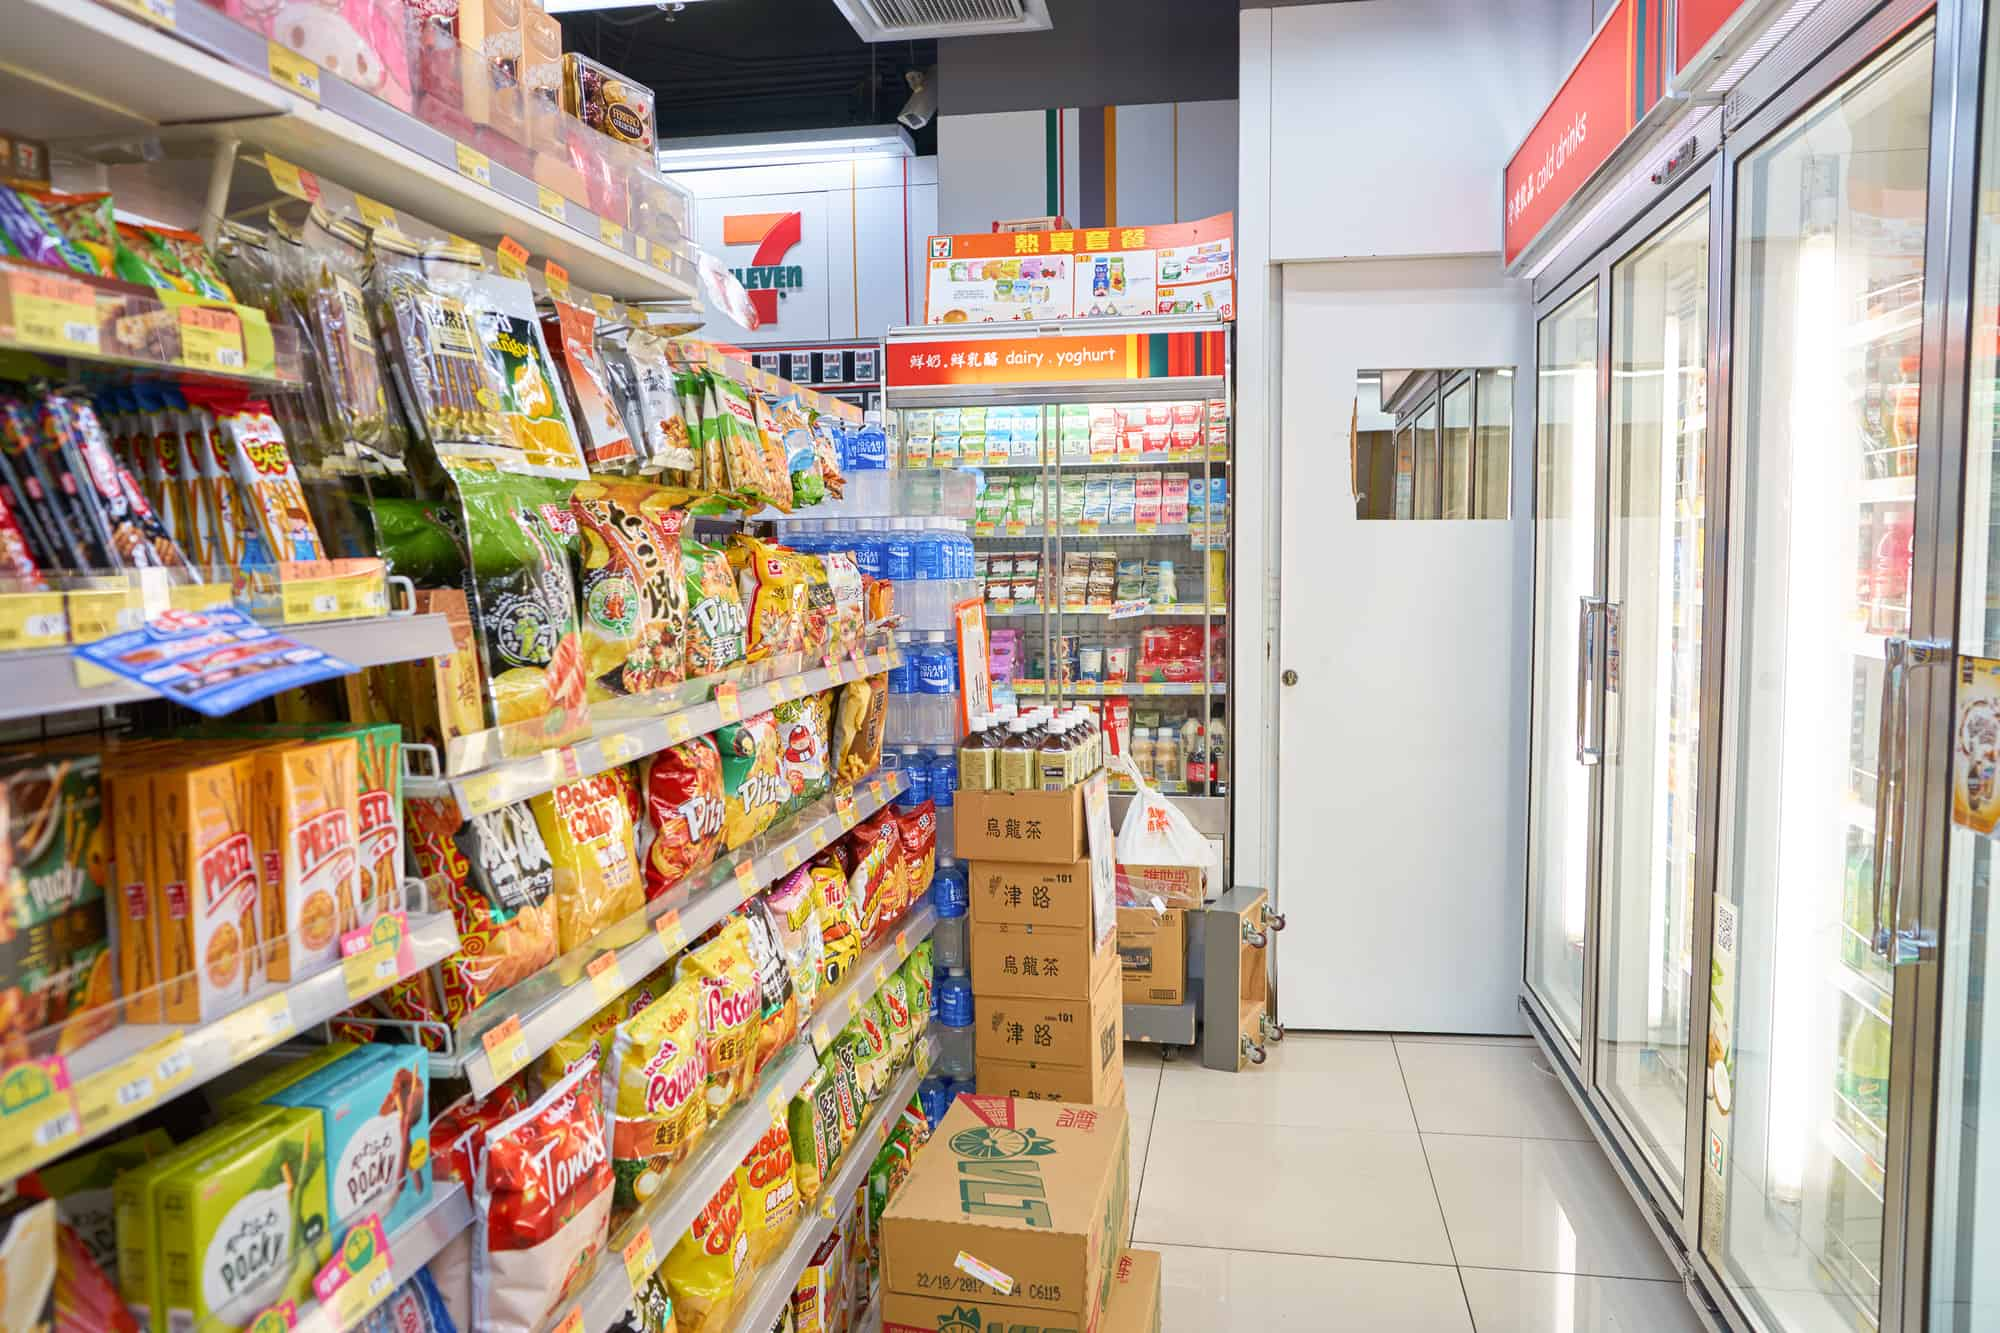 Sales at UK convenience stores up 17%